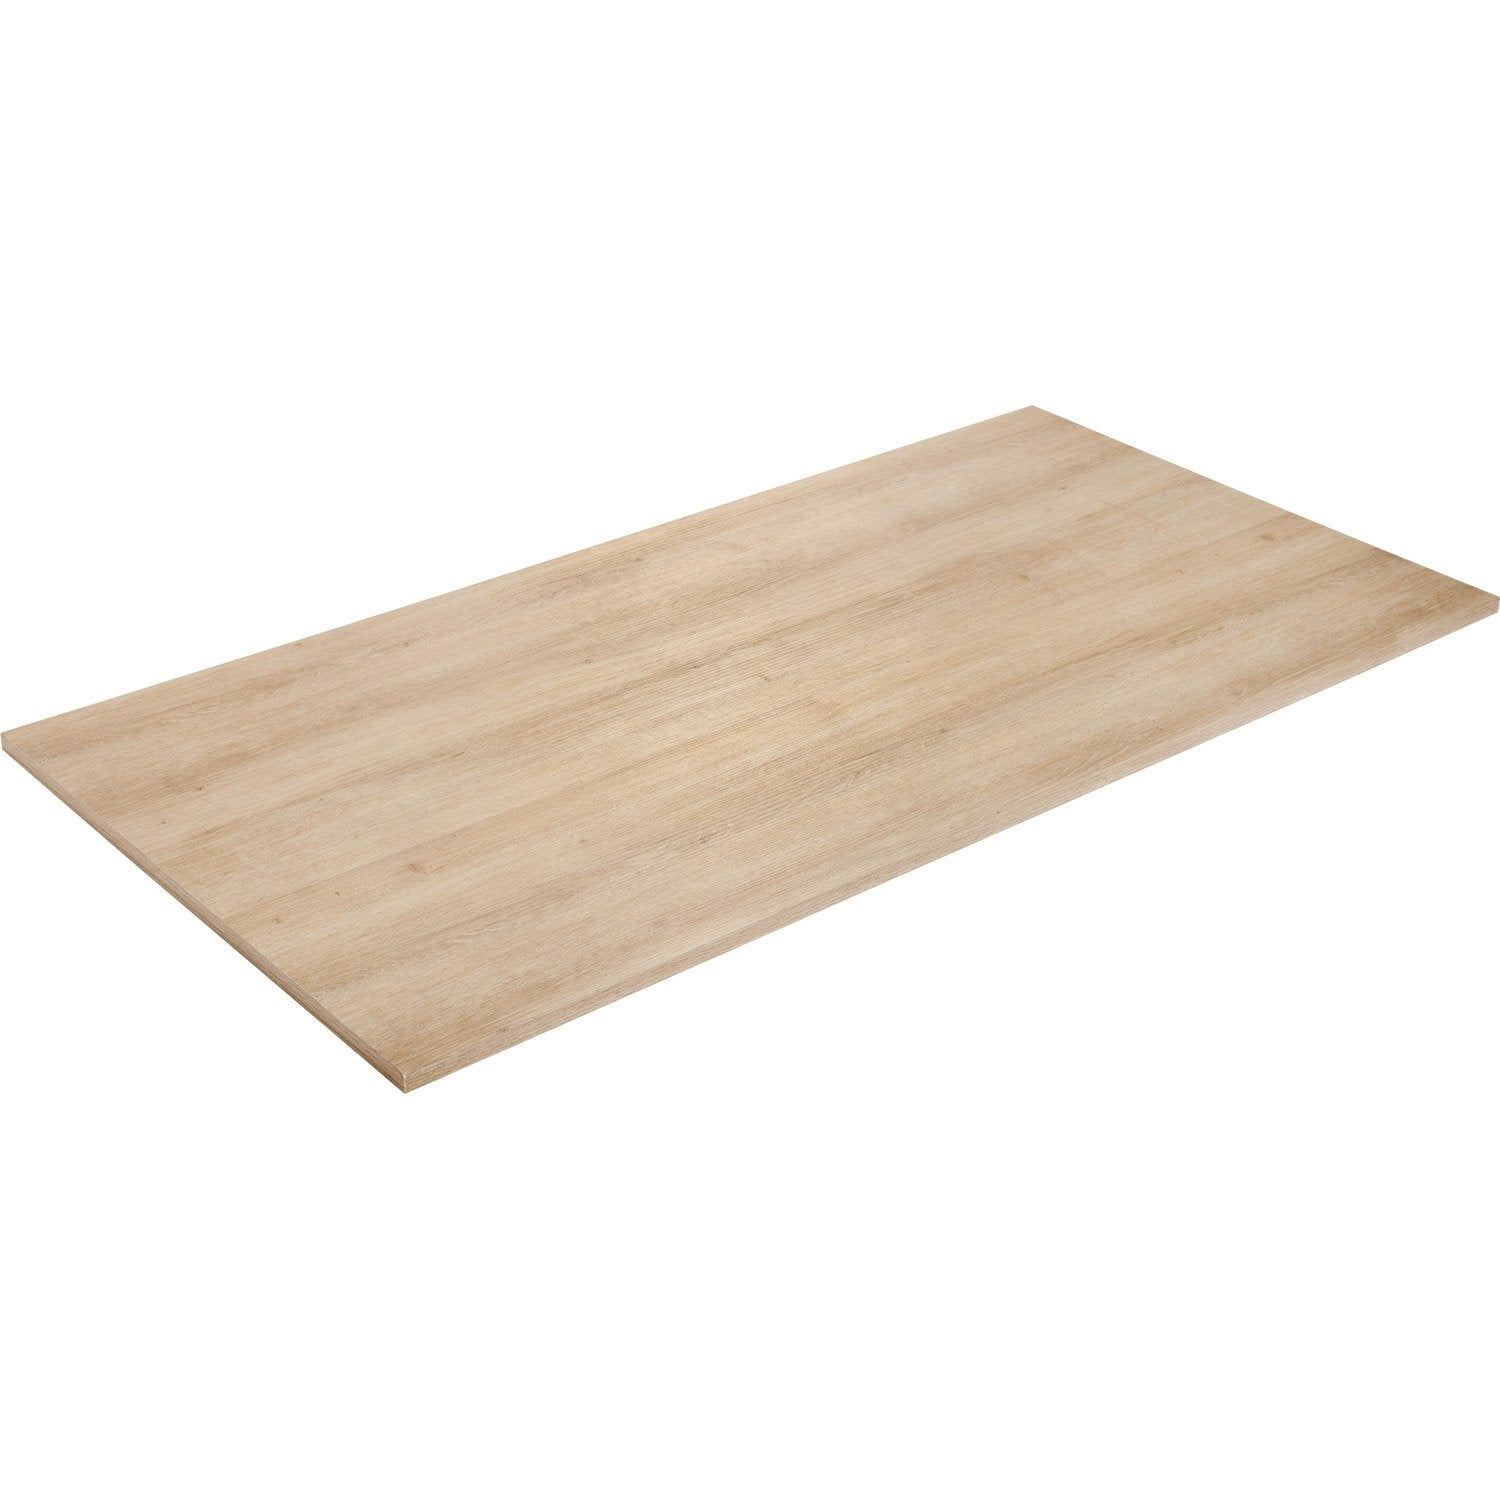 Plateau de table agglom r ch ne x cm x - Plateau de table stratifie ...